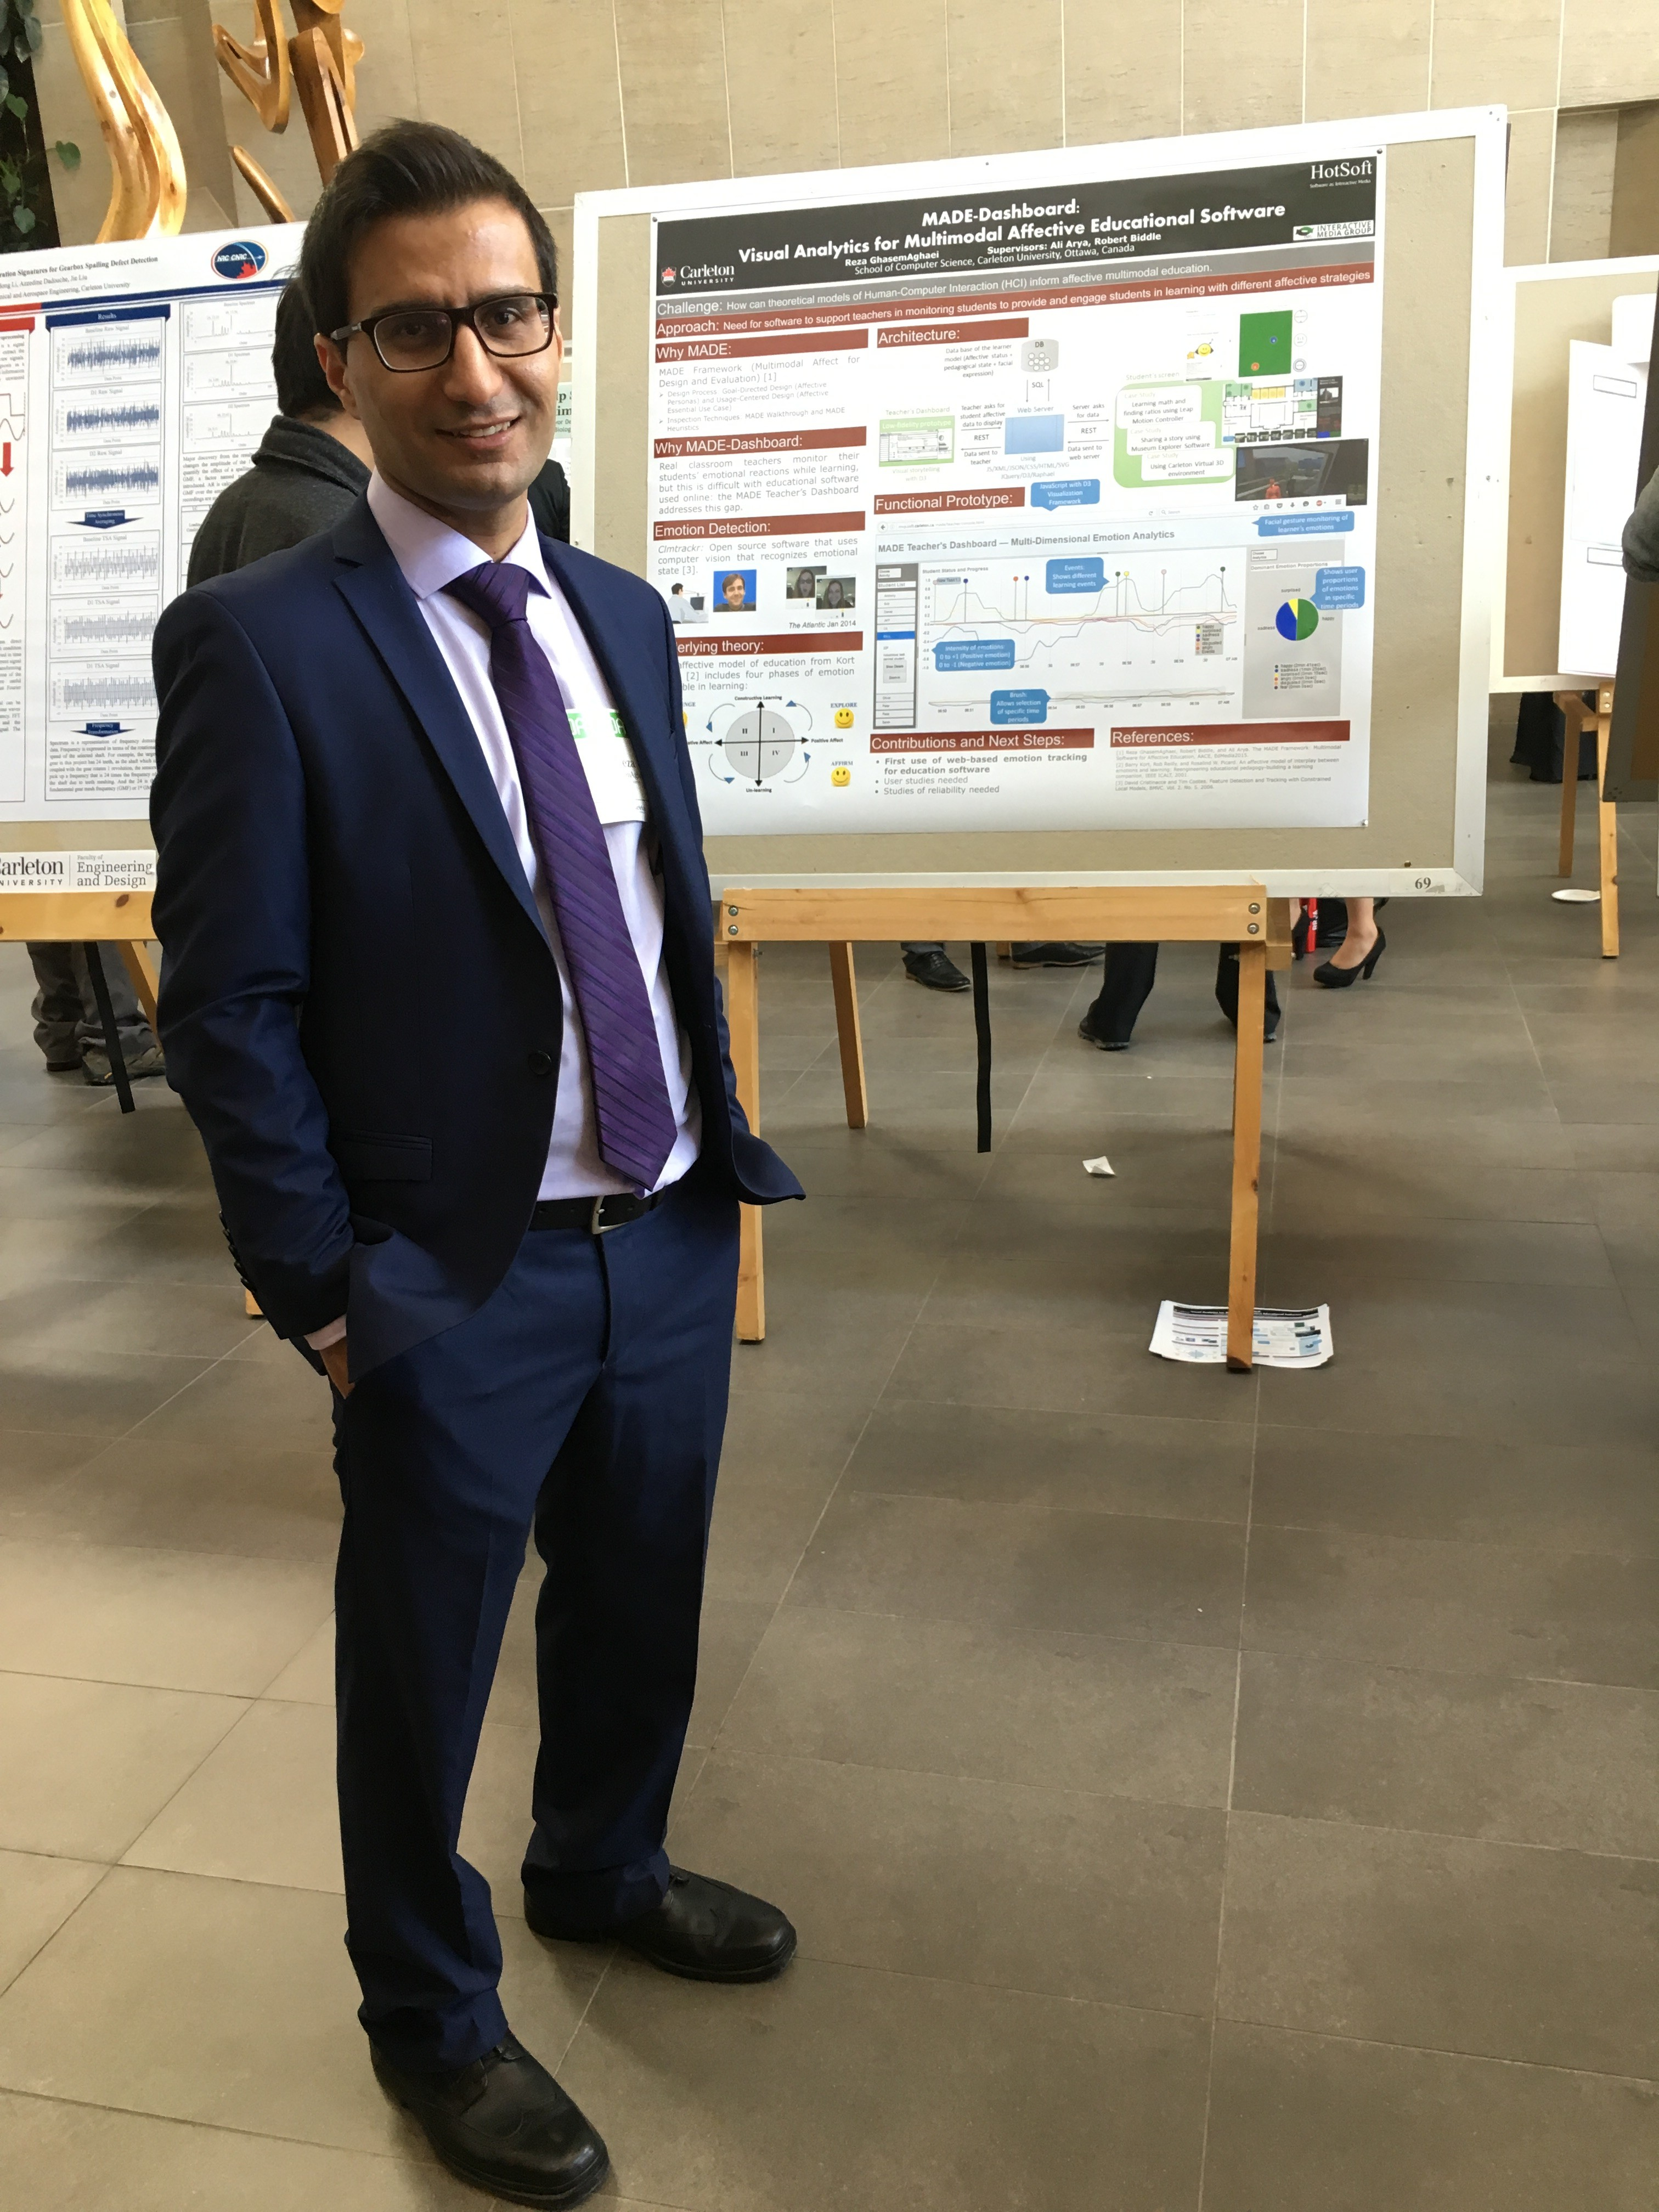 """Computer Science student, Reza GhasemAghaei, shares his project, """"MADE-Dashboard: Visual Analytics for Multimodal Affective Educational Software"""""""